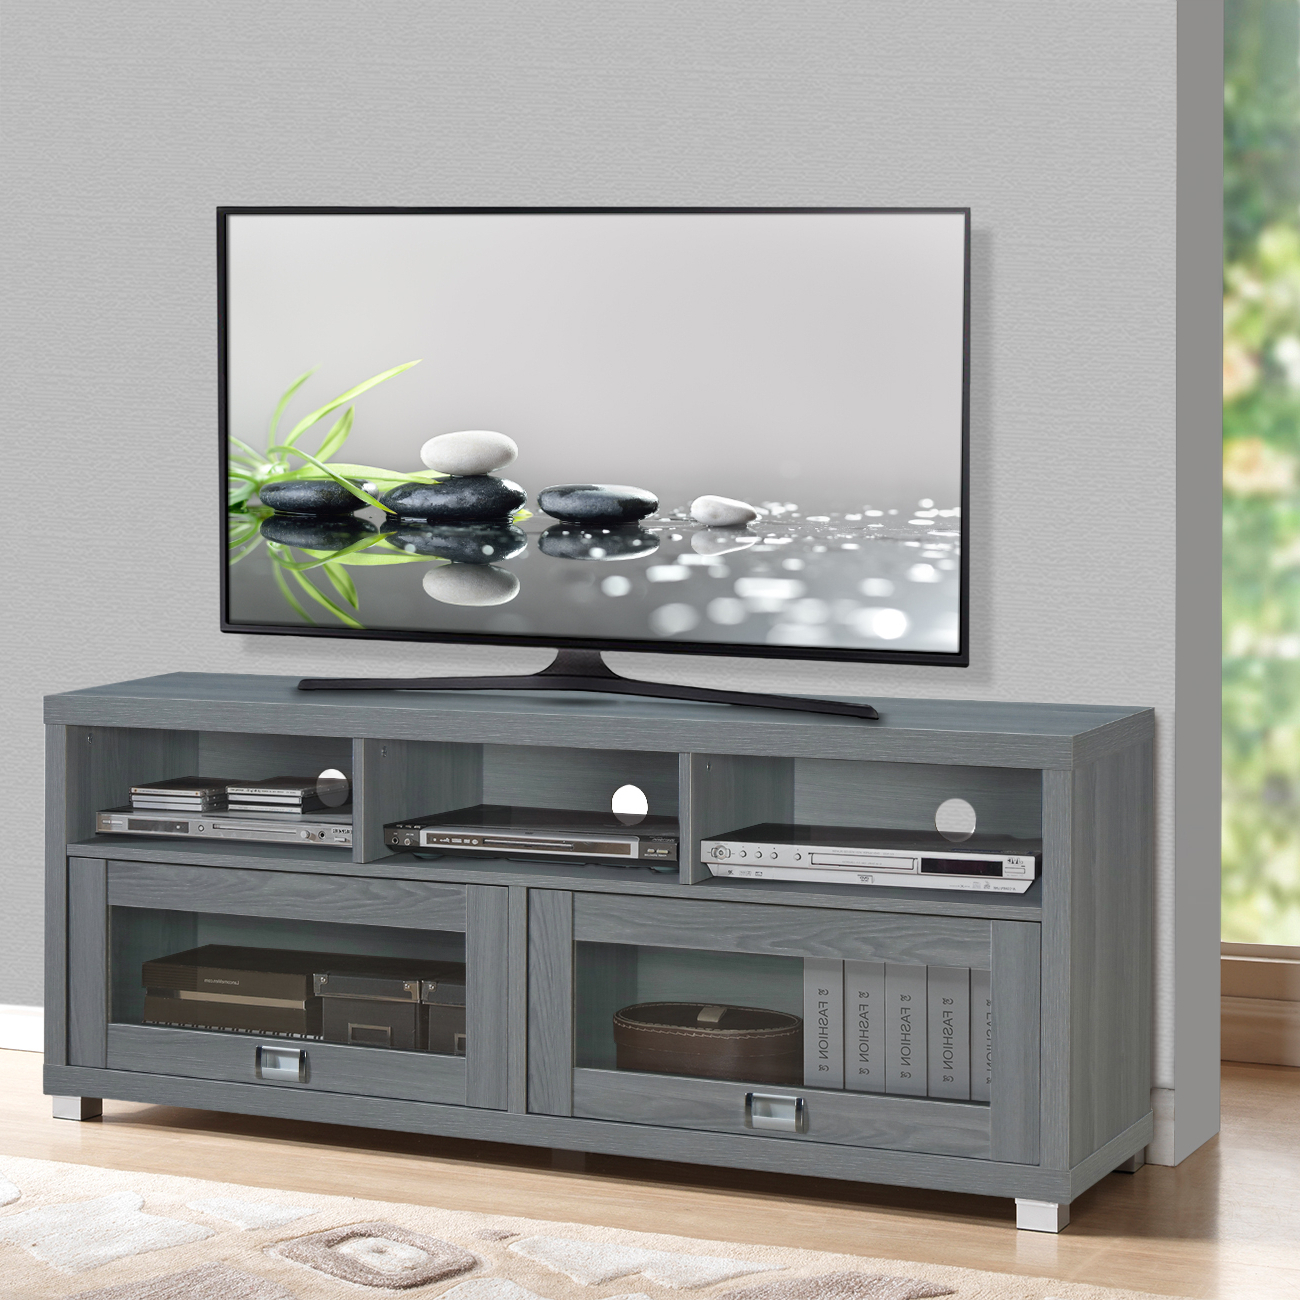 """Kinsella Tv Stands For Tvs Up To 70"""" Inside Most Up To Date Flat Screen Tv Stand Up To 75 Inch 50 55 60 65 70 55in (View 13 of 25)"""